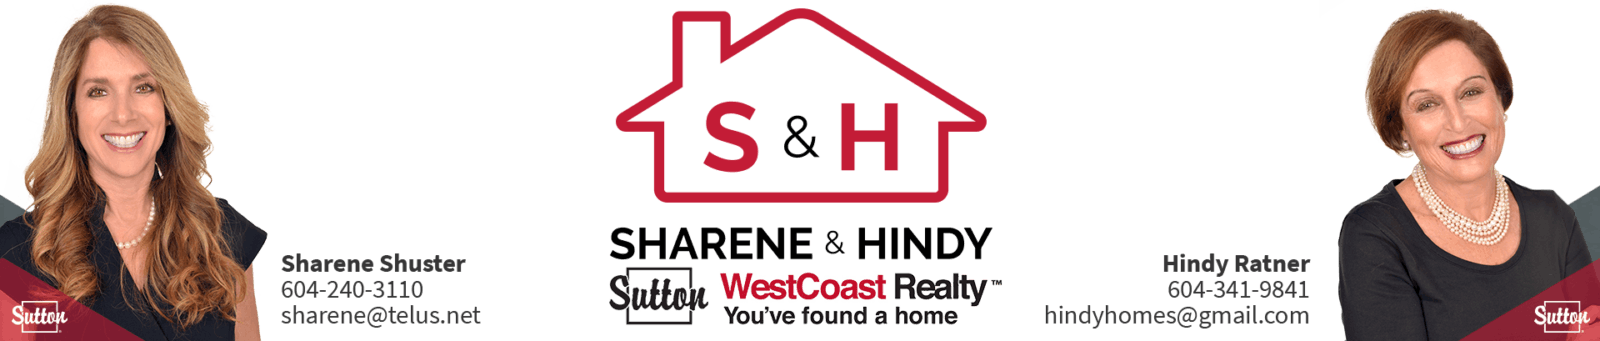 Sharene and Hindy Realty